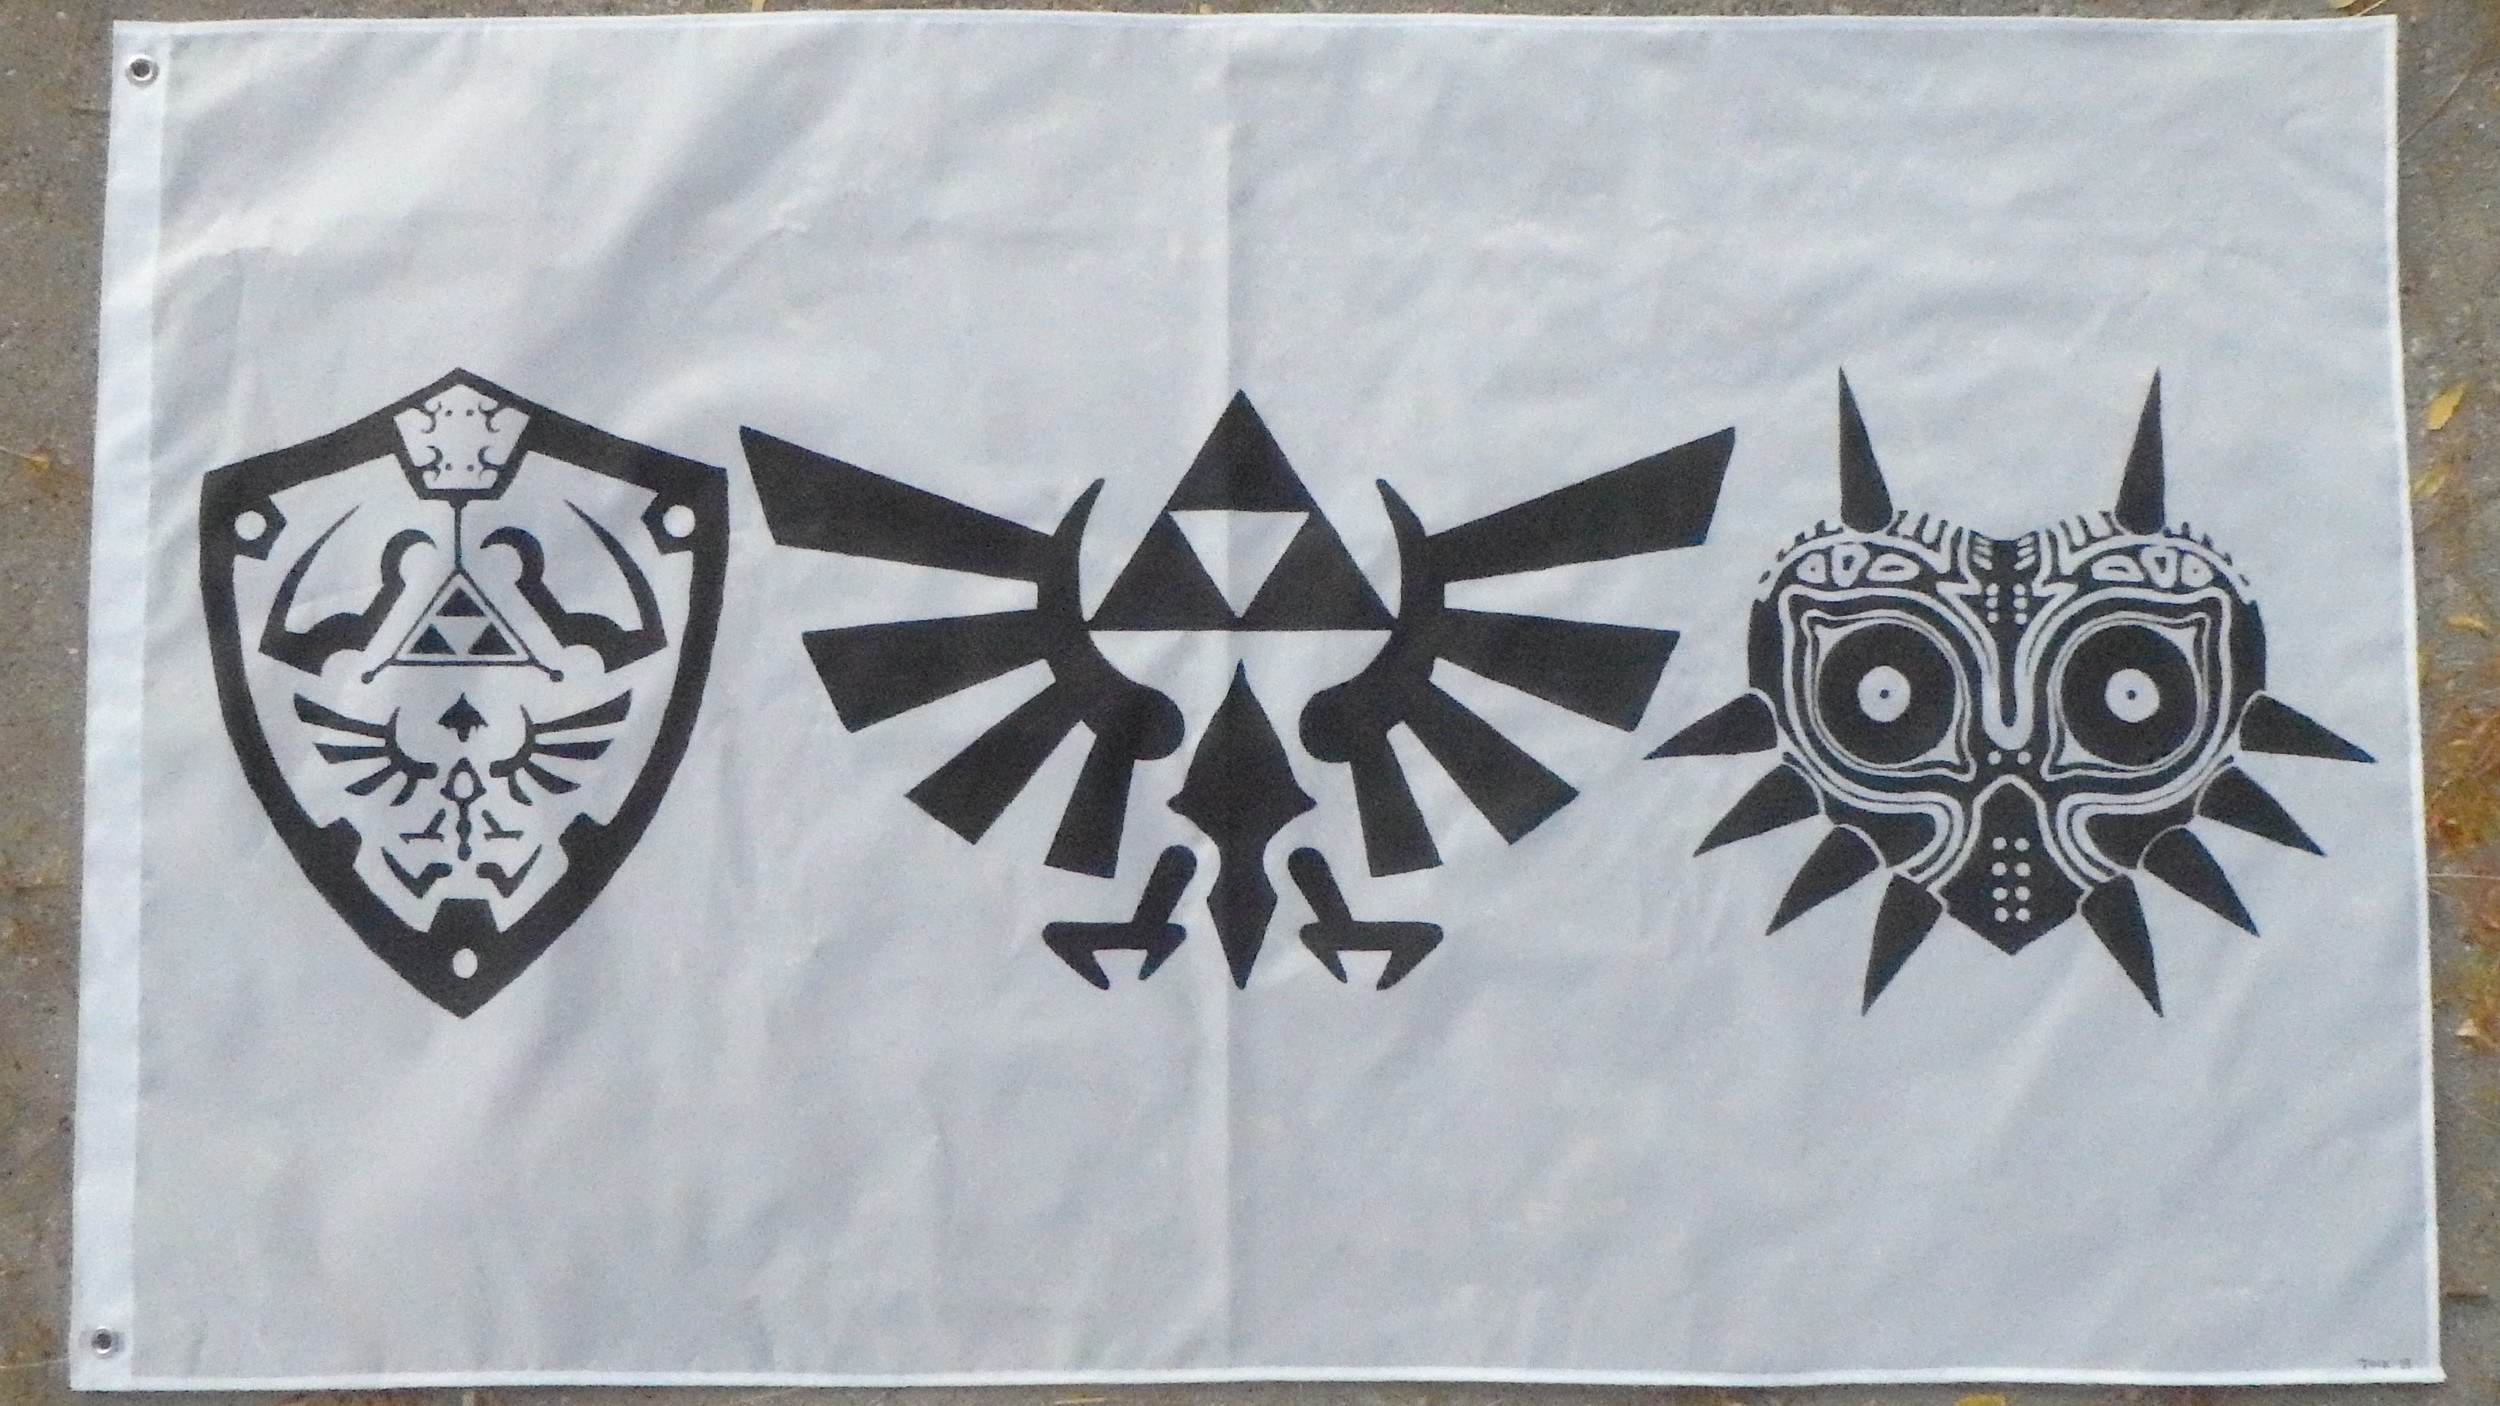 Tock Custom - Legend of Zelda Flag